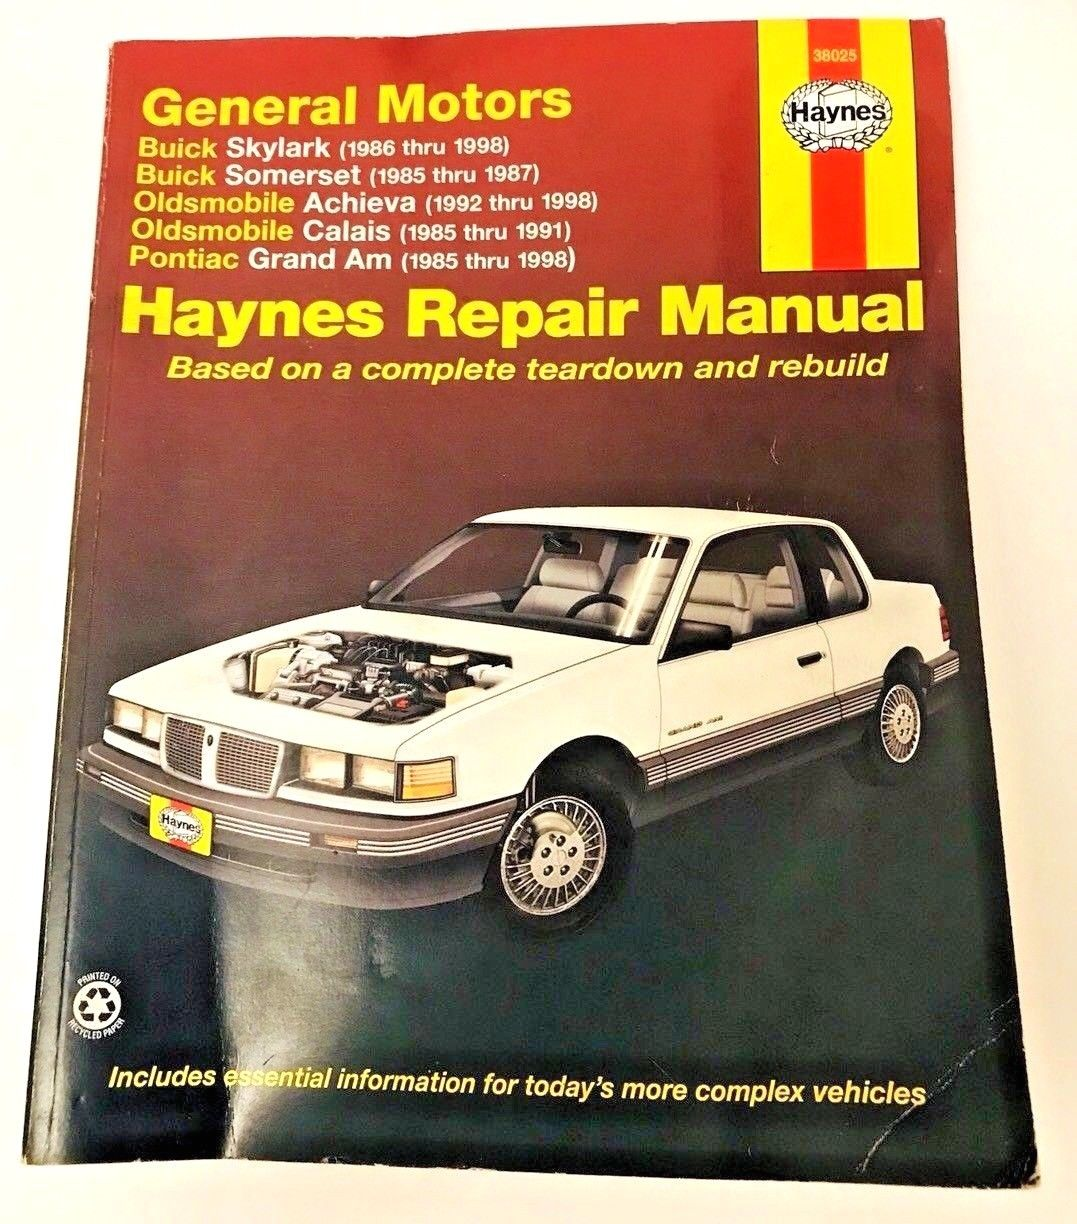 Haynes Repair Manual 38025 Buick Oldsmobile Pontiac Skylark Grand Am Achieva 38025